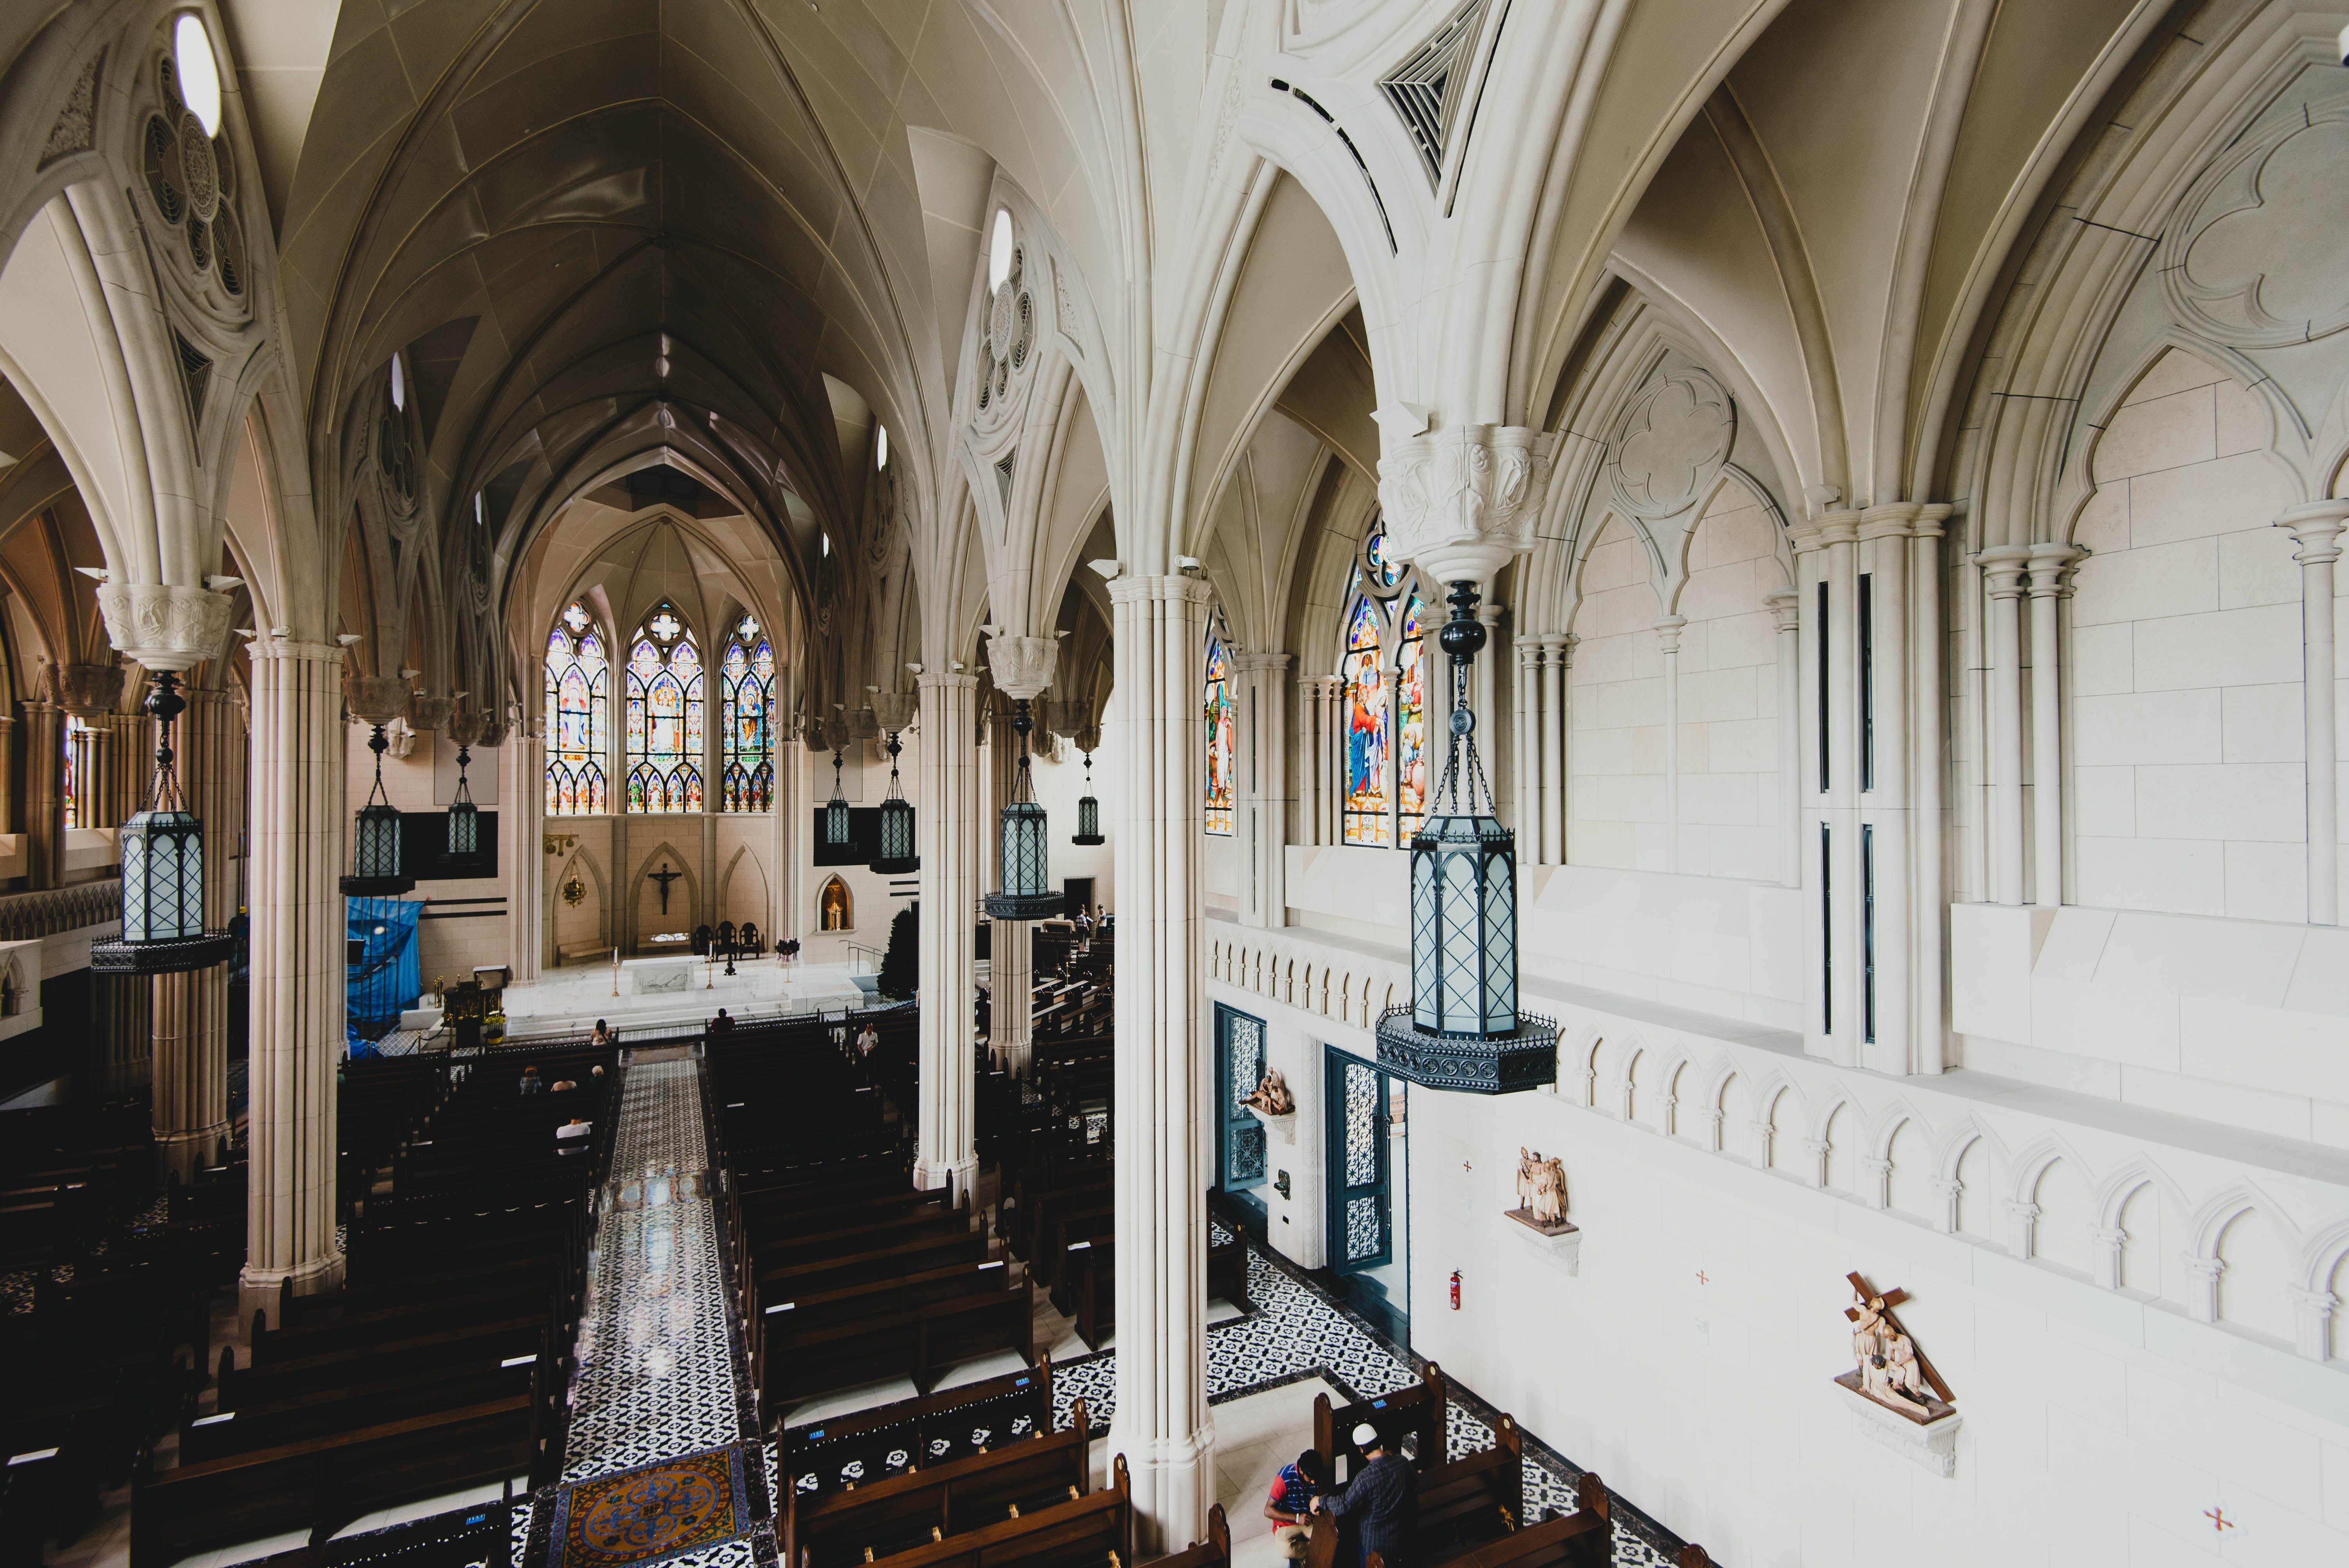 aerial view photography of brown wooden pew bench inside church